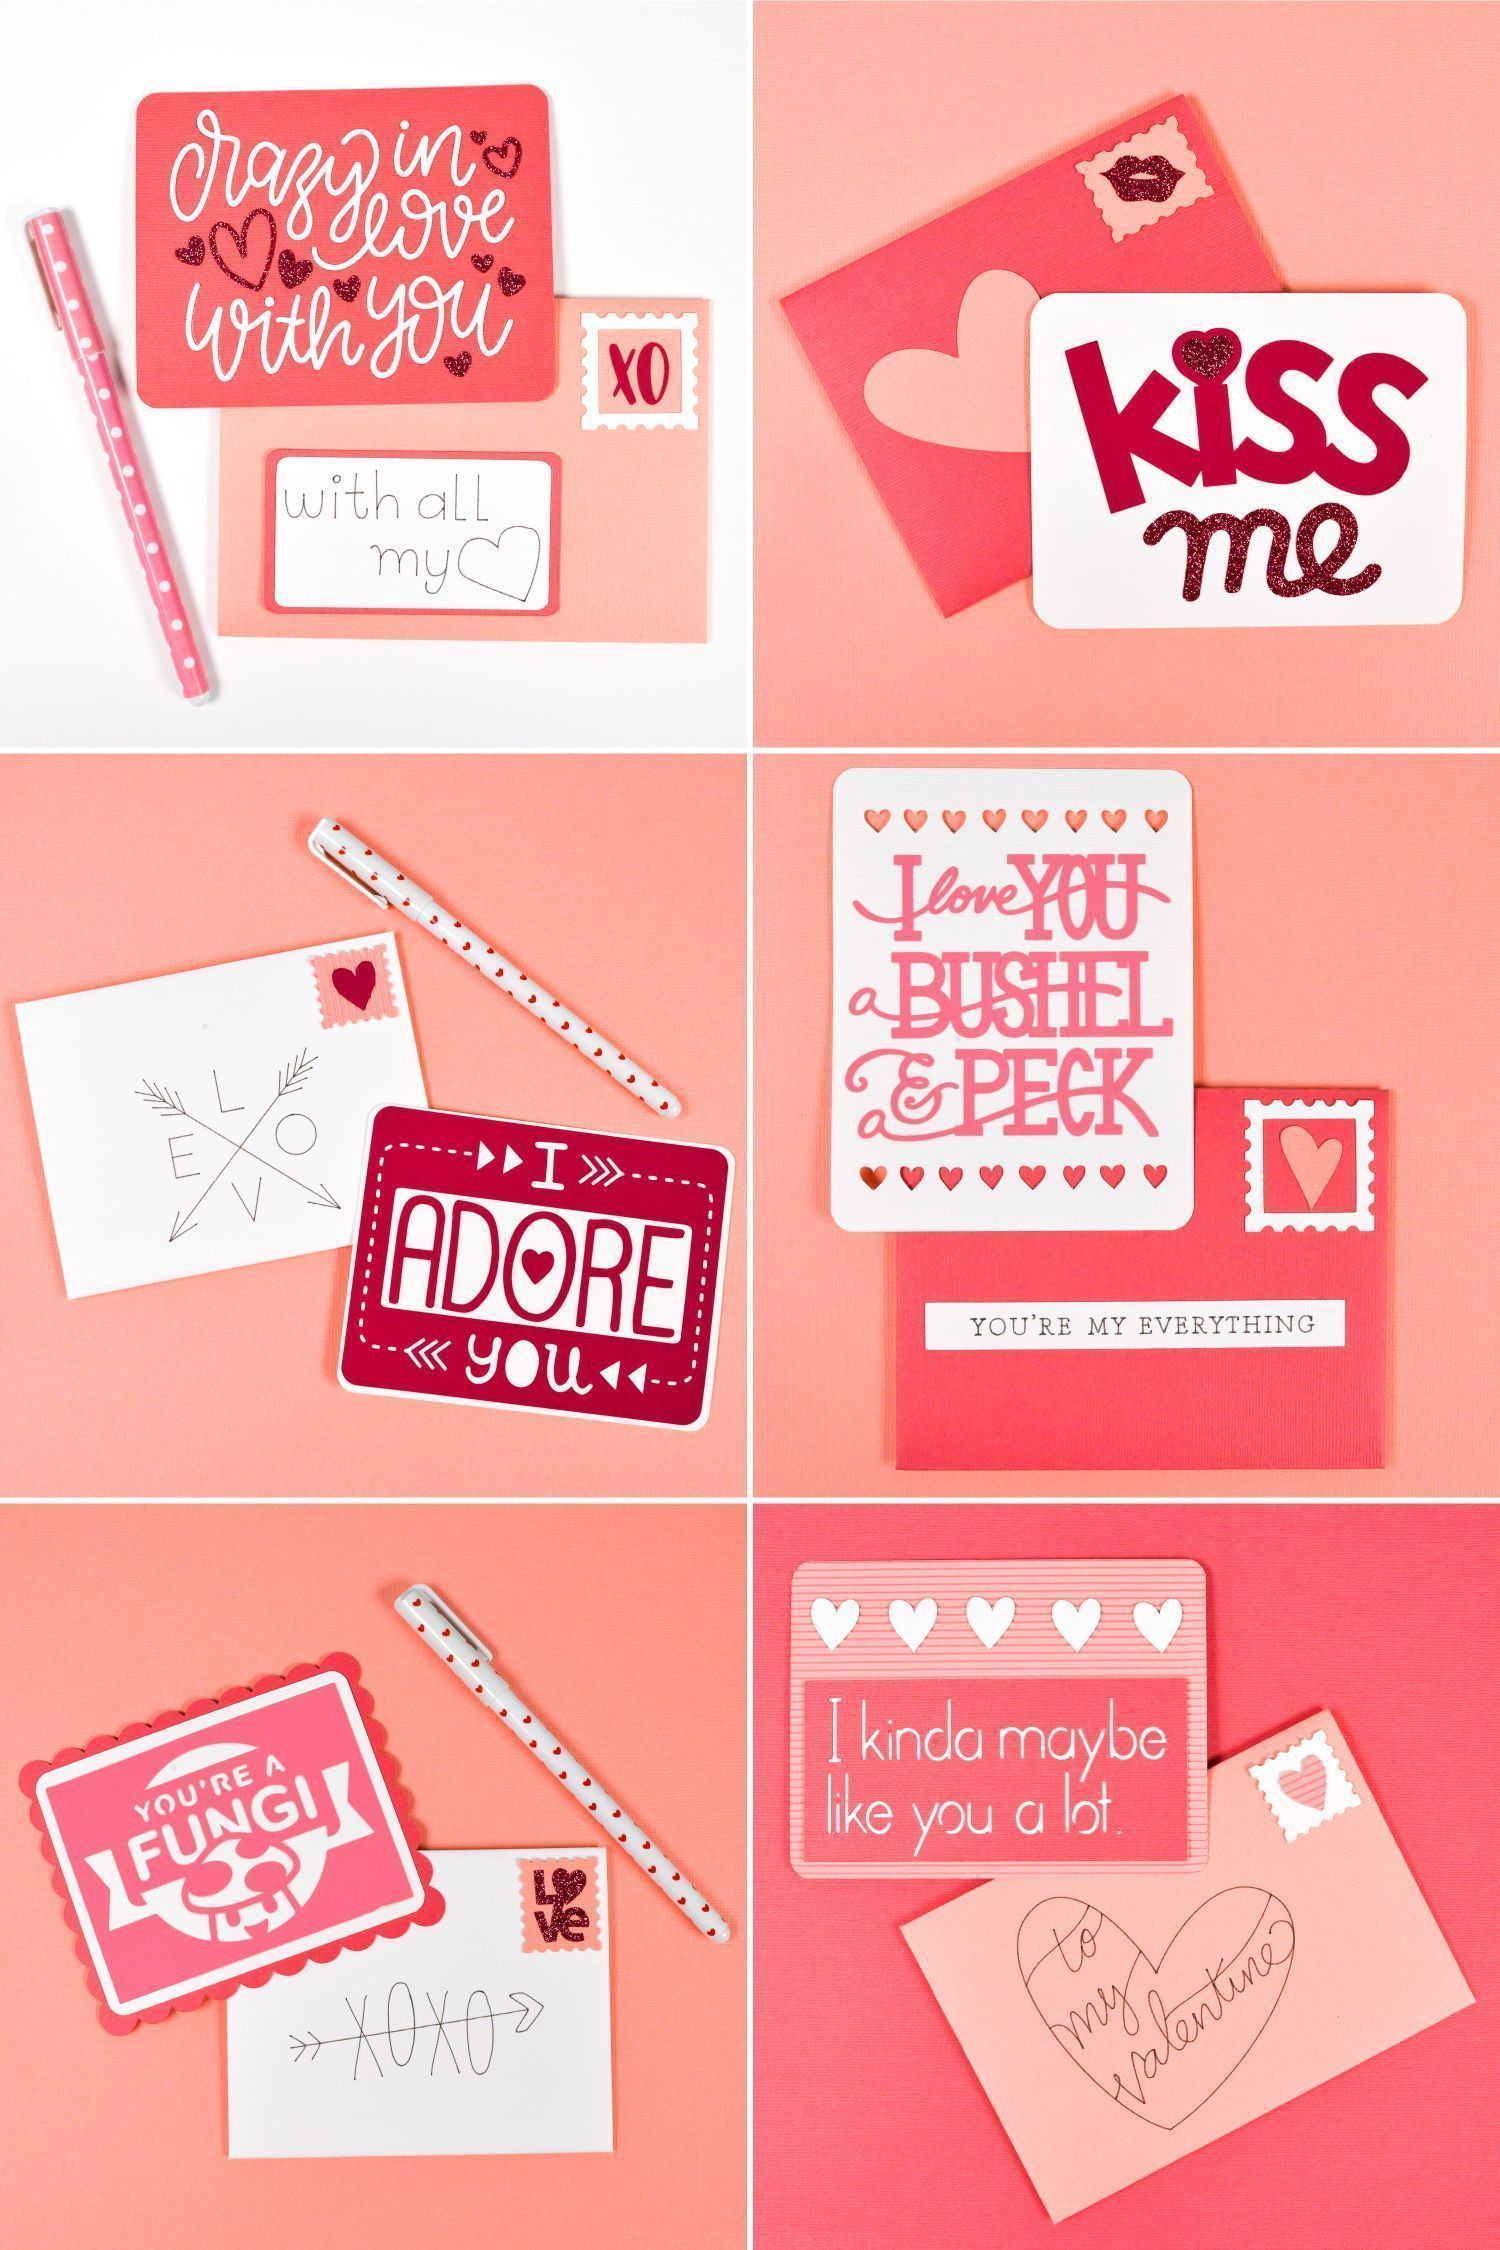 Valentineamp039s Day diy Valentineamp039s Day diy DIY Valentines Day Idea Love Letters with Cricut  DIY Valentines Day Idea Love Letters with Cricut  day cards cricut